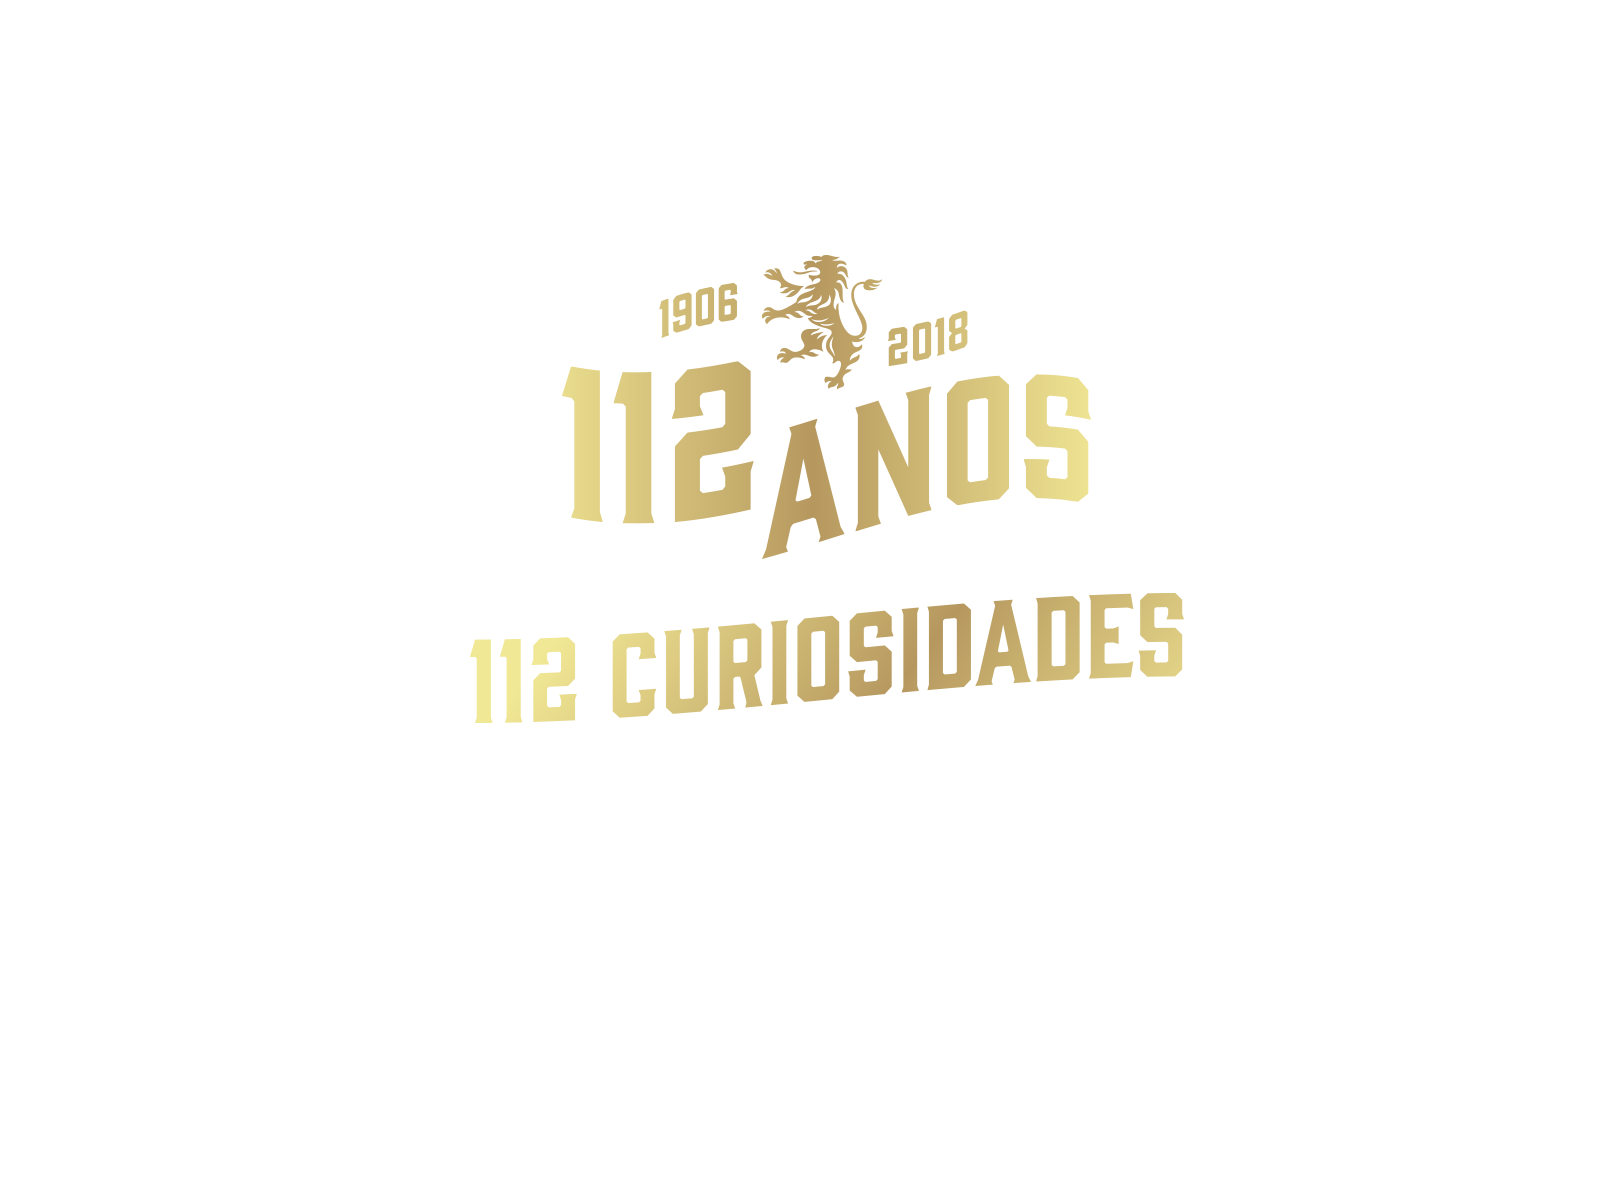 https://scpconteudos.pt/sites/default/files/revslider/image/Banner_HomePage-112-CURI-2.PNG